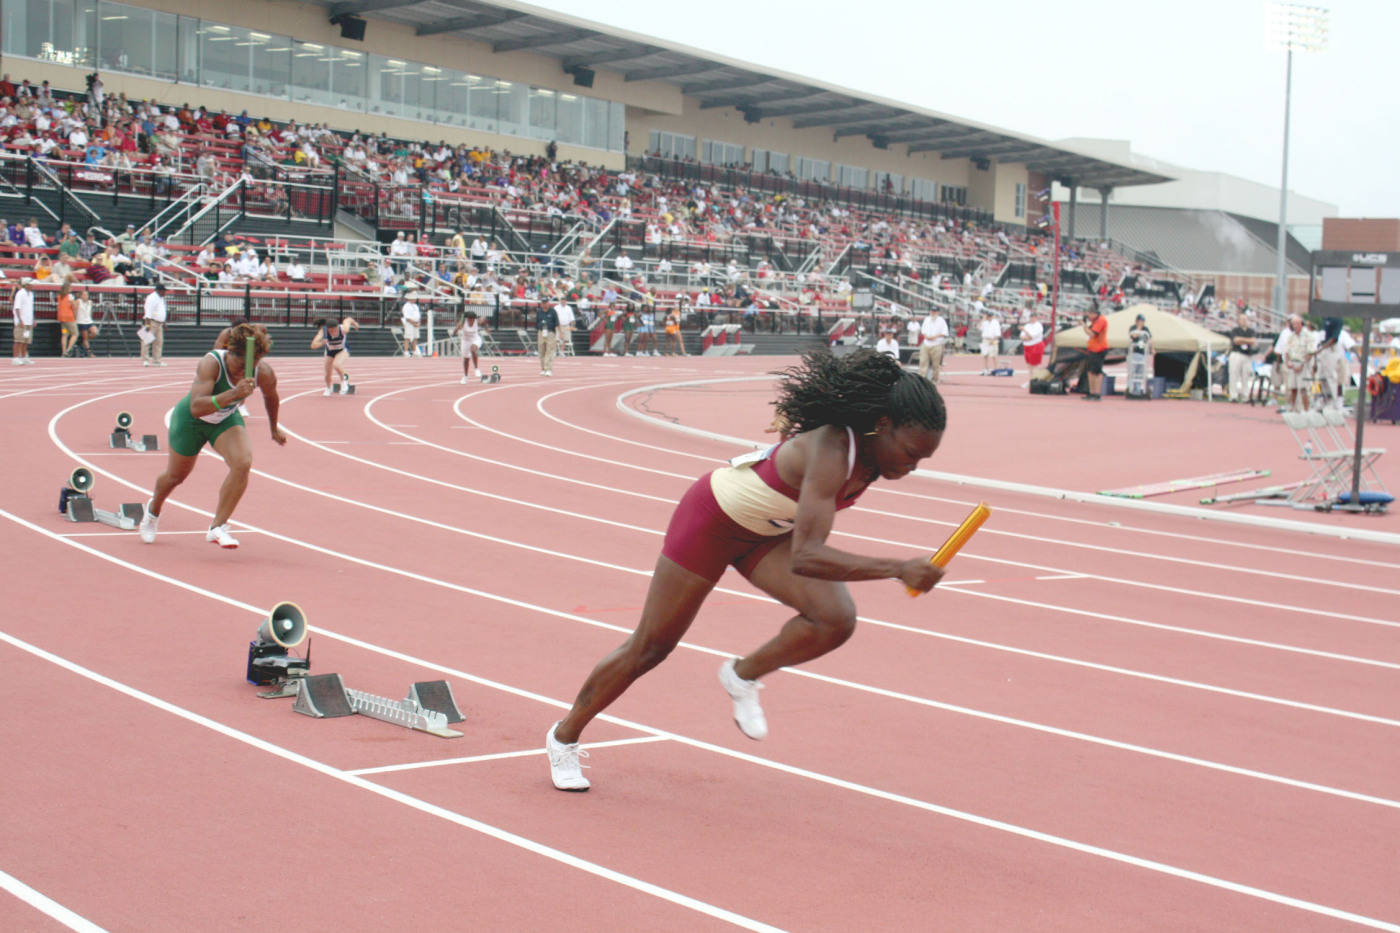 Nicole Marcus handles the first leg of the 4x100m relay for the Seminoles.